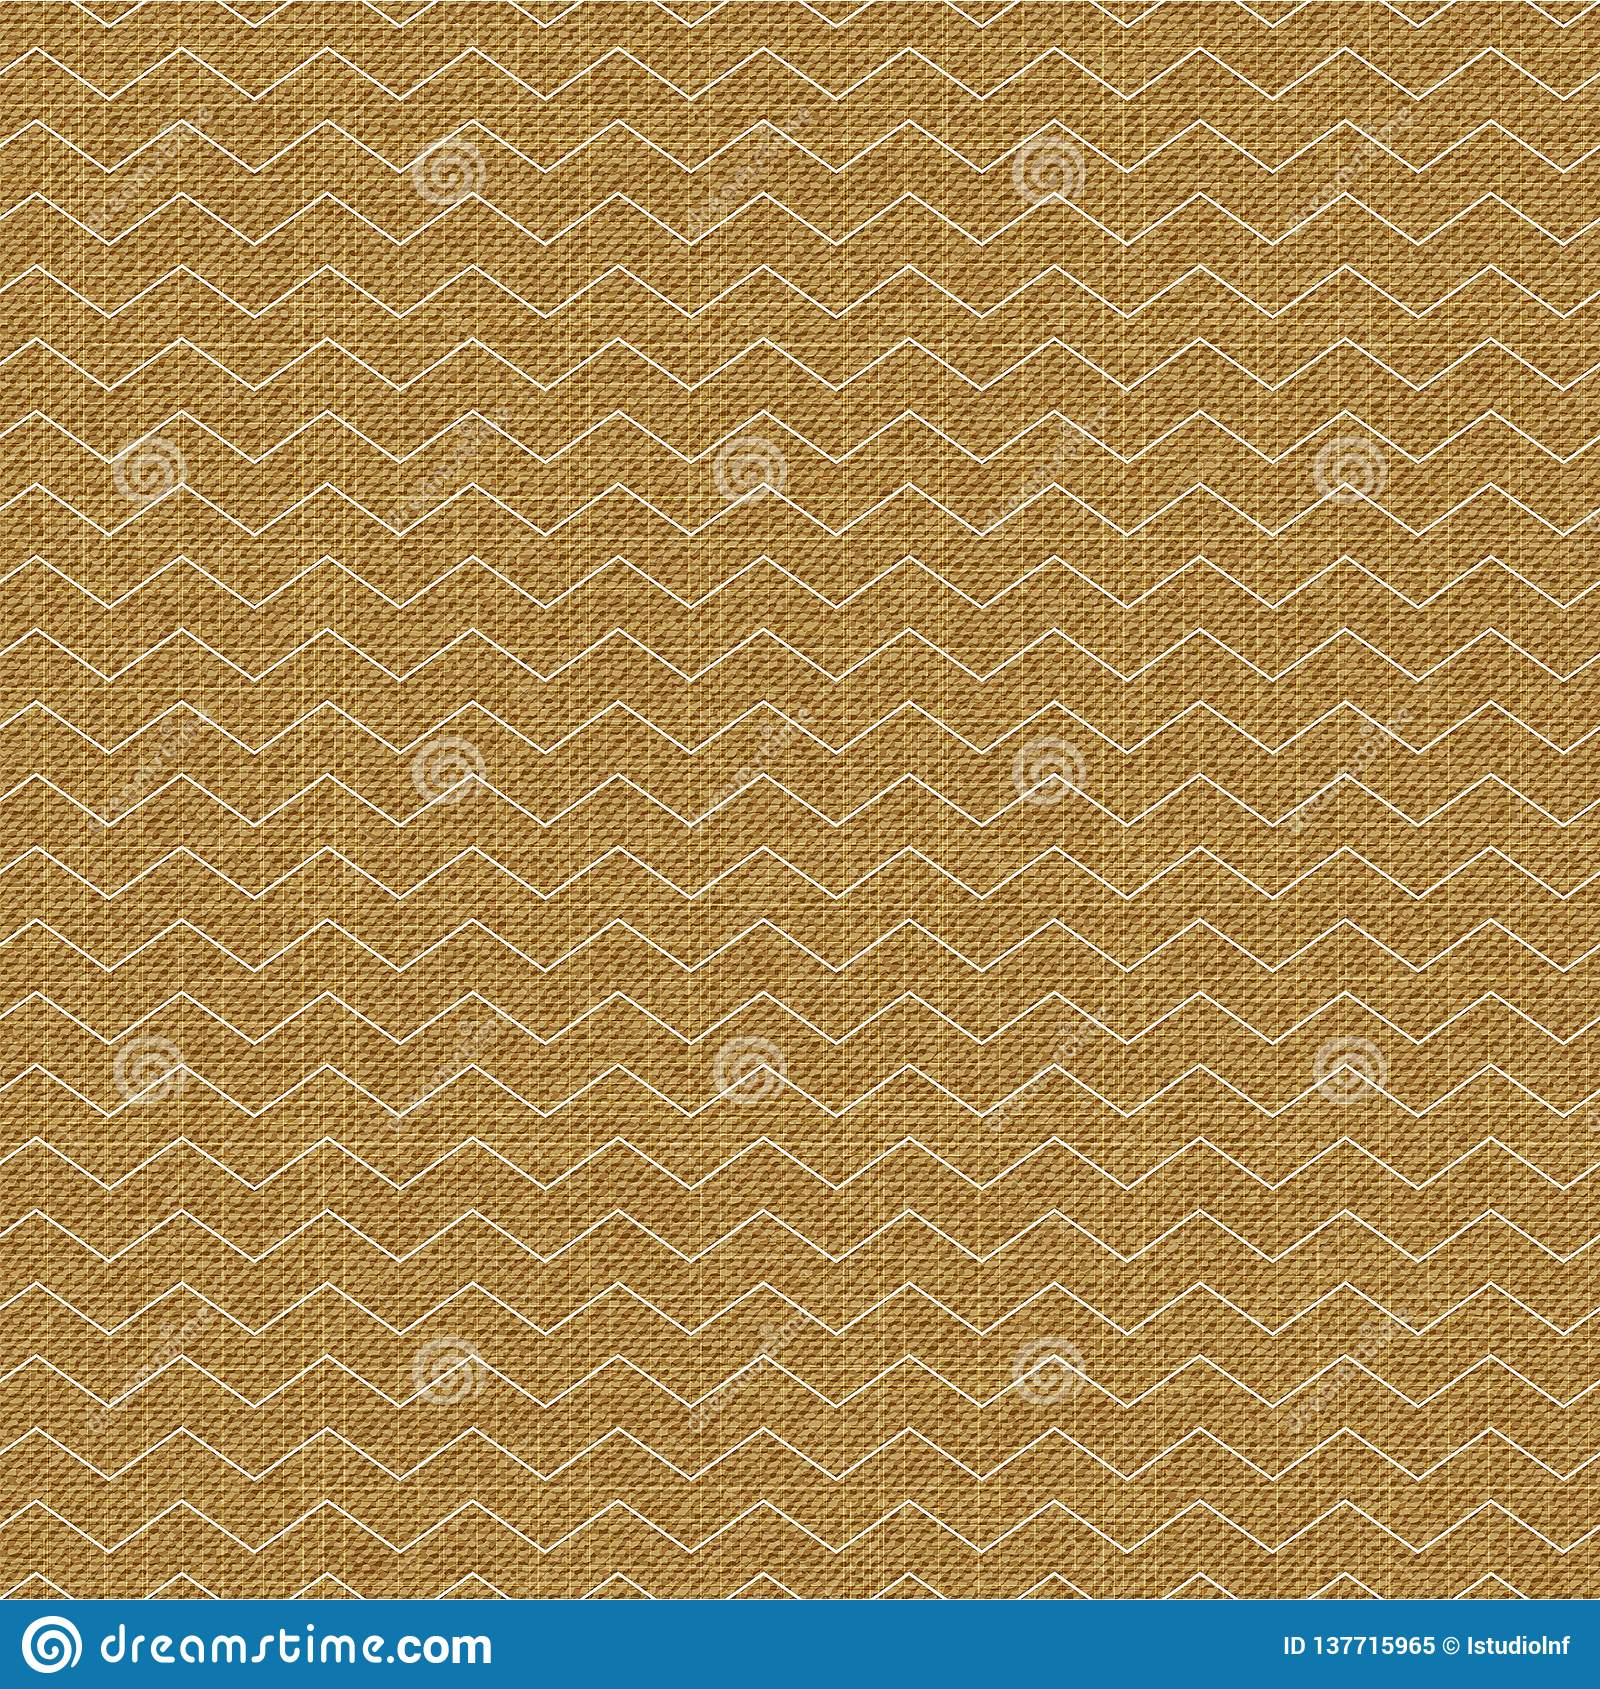 Waves pattern on textile, abstract geometric background